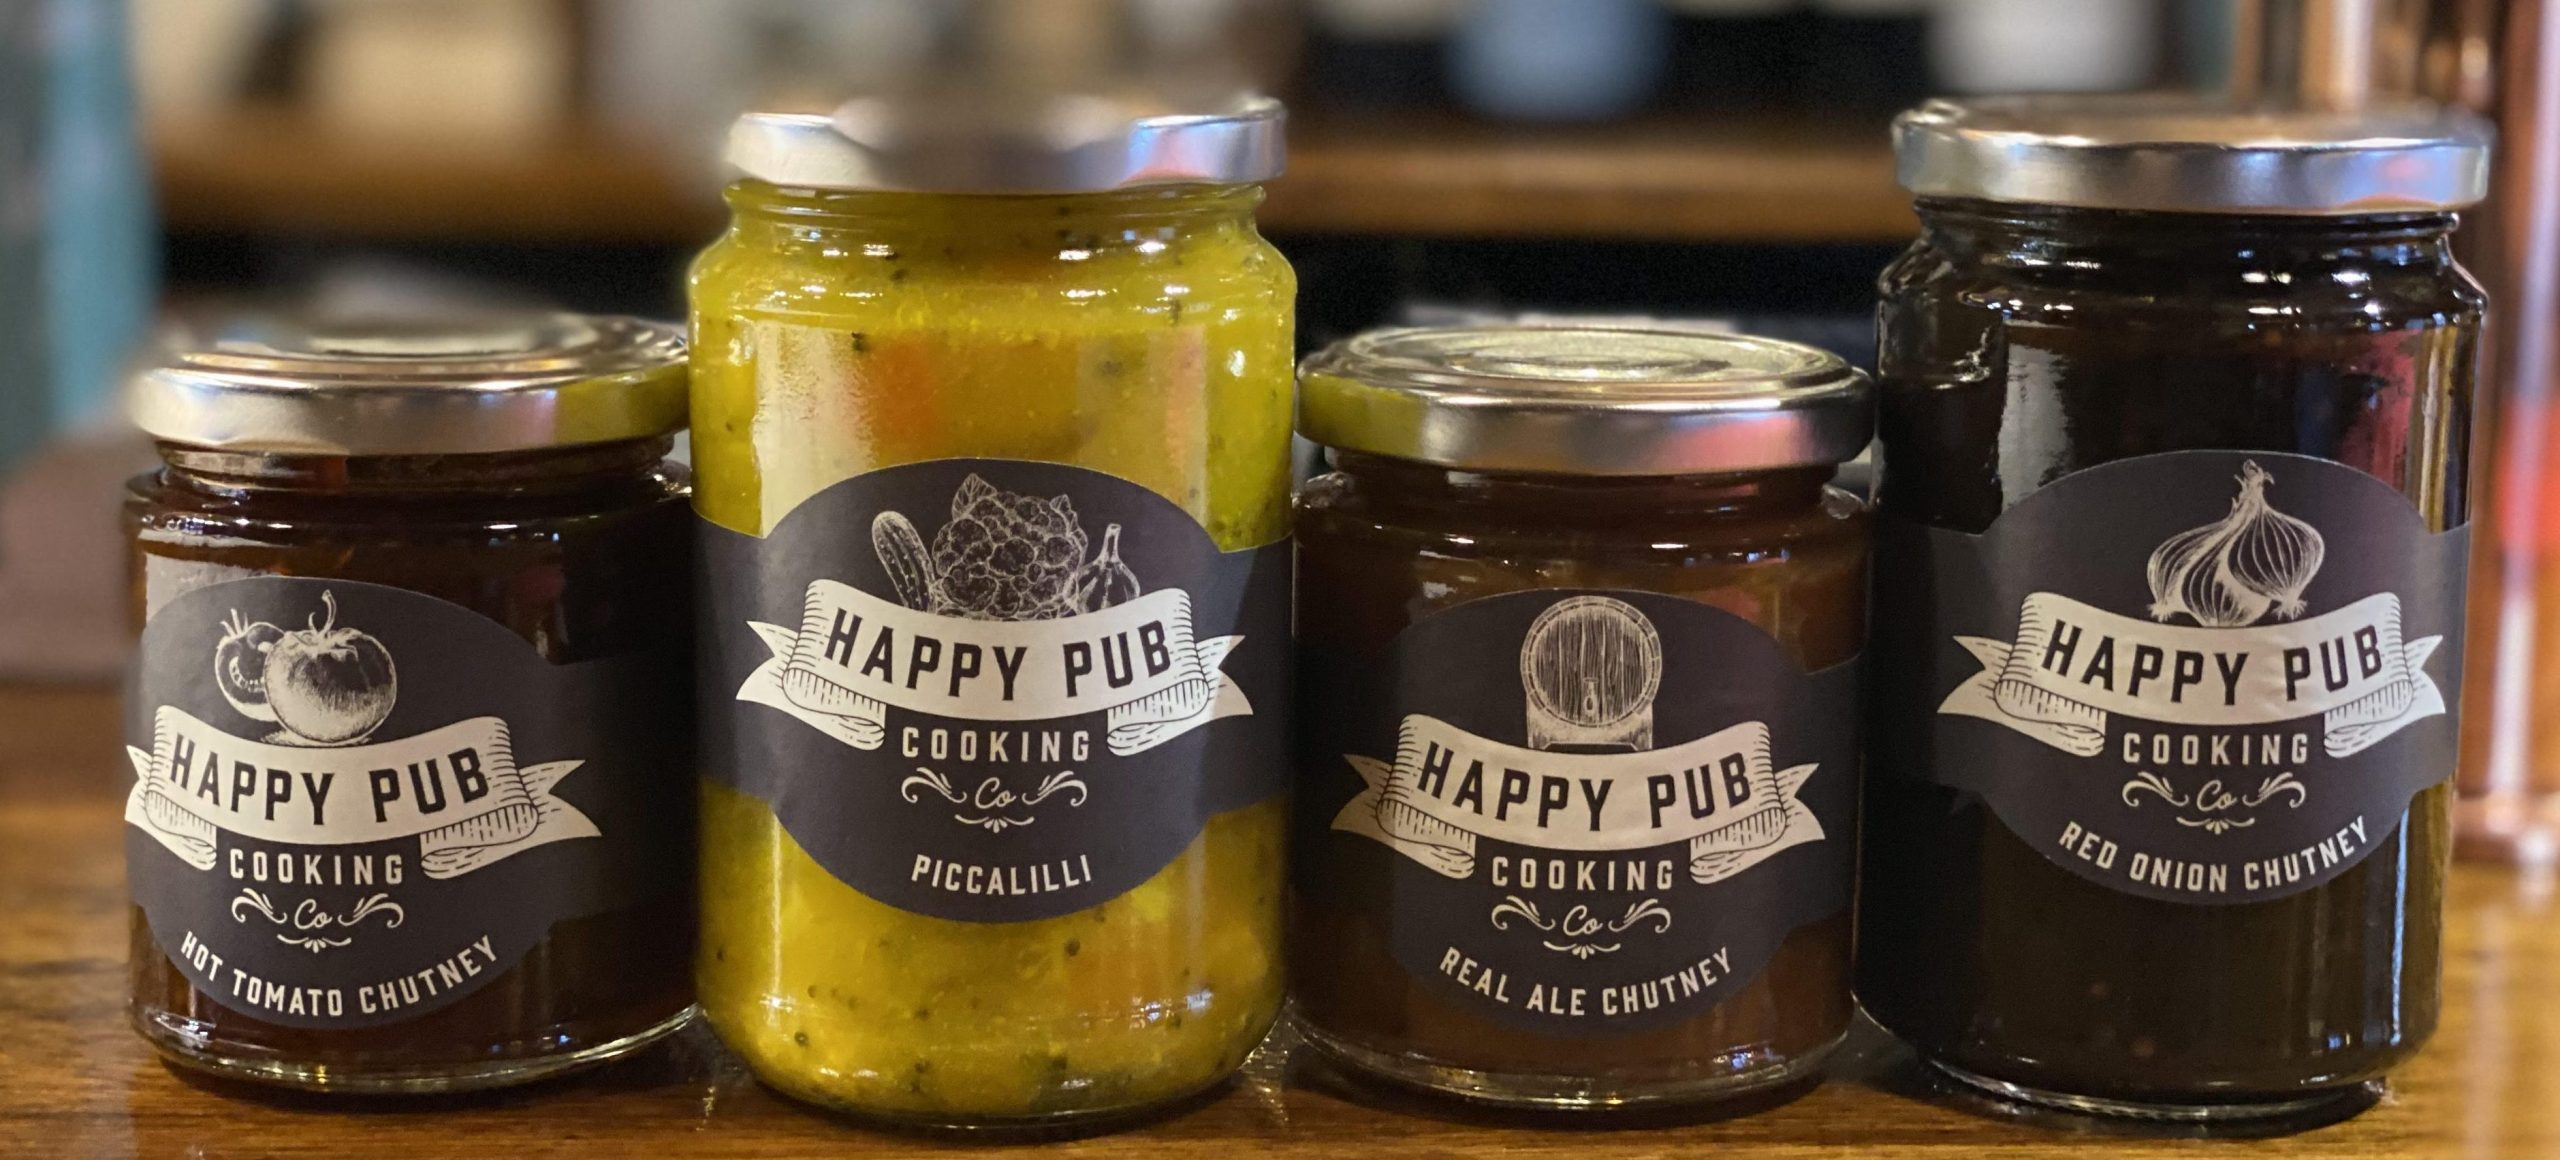 'Happy Pub Cooking' Chutneys